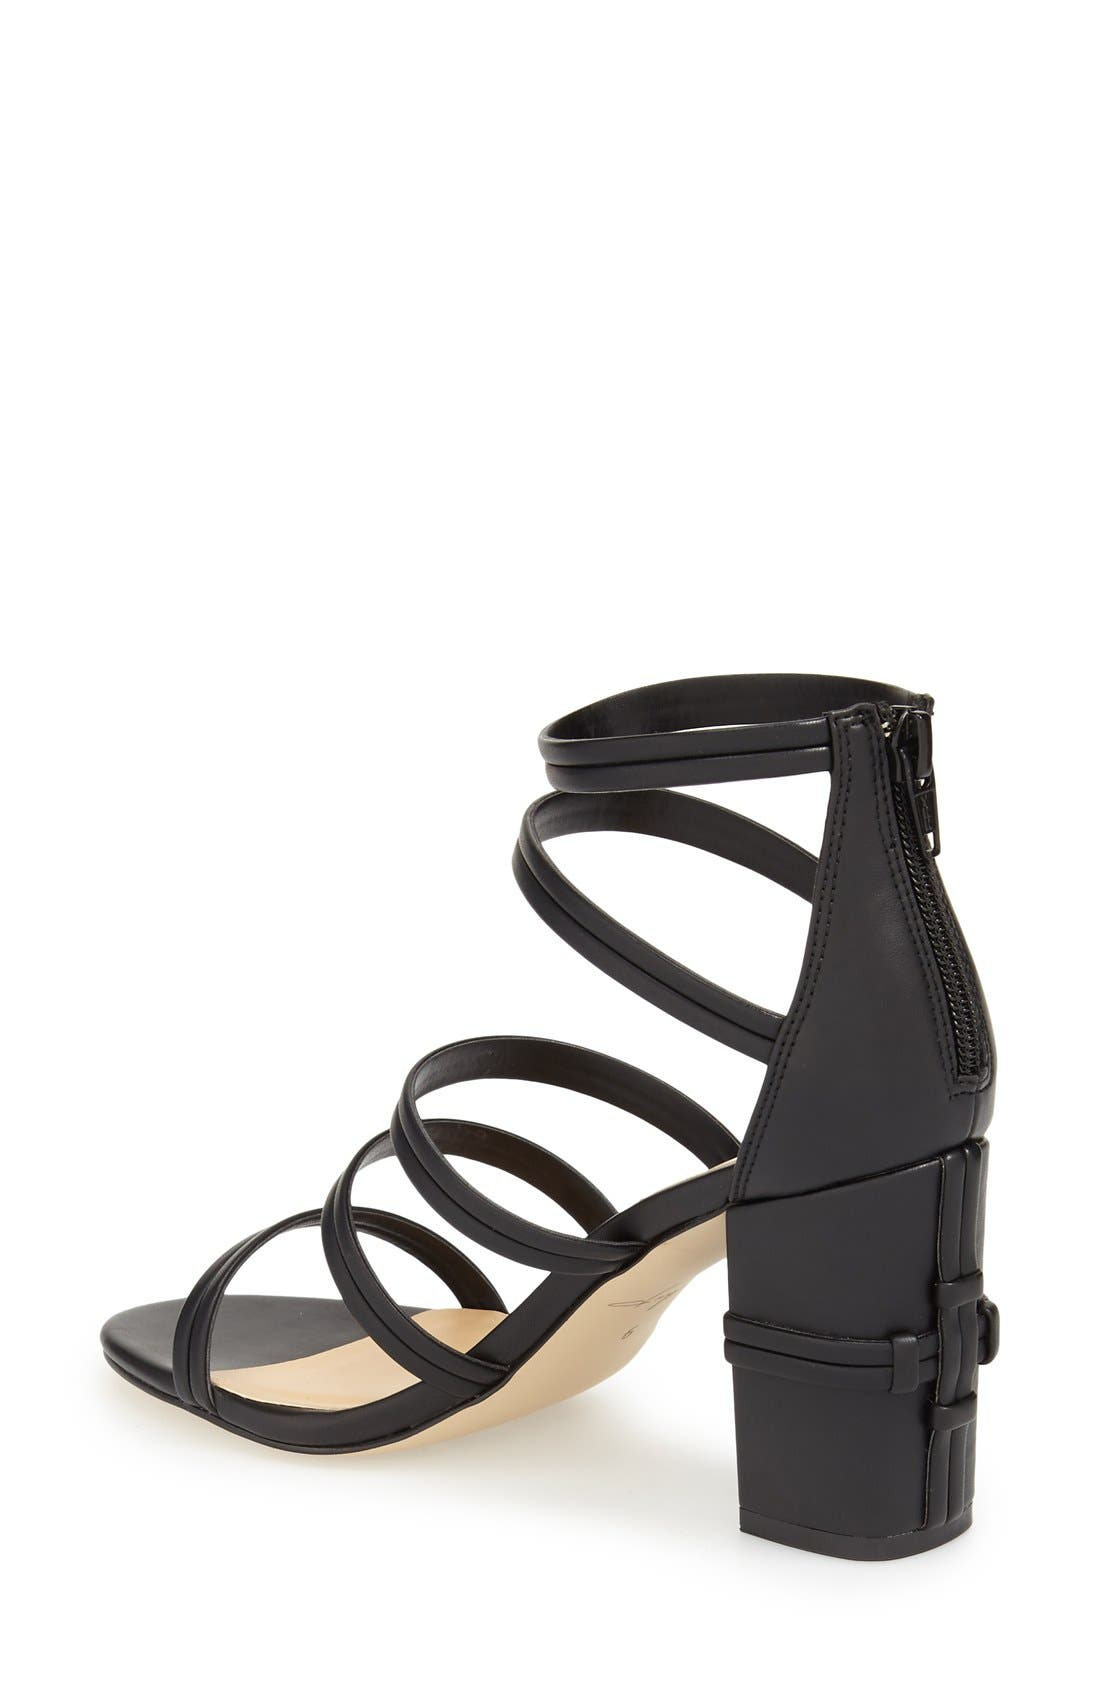 DAYA, by Zendaya 'Amiee' Strappy Sandal, Alternate thumbnail 3, color, 001